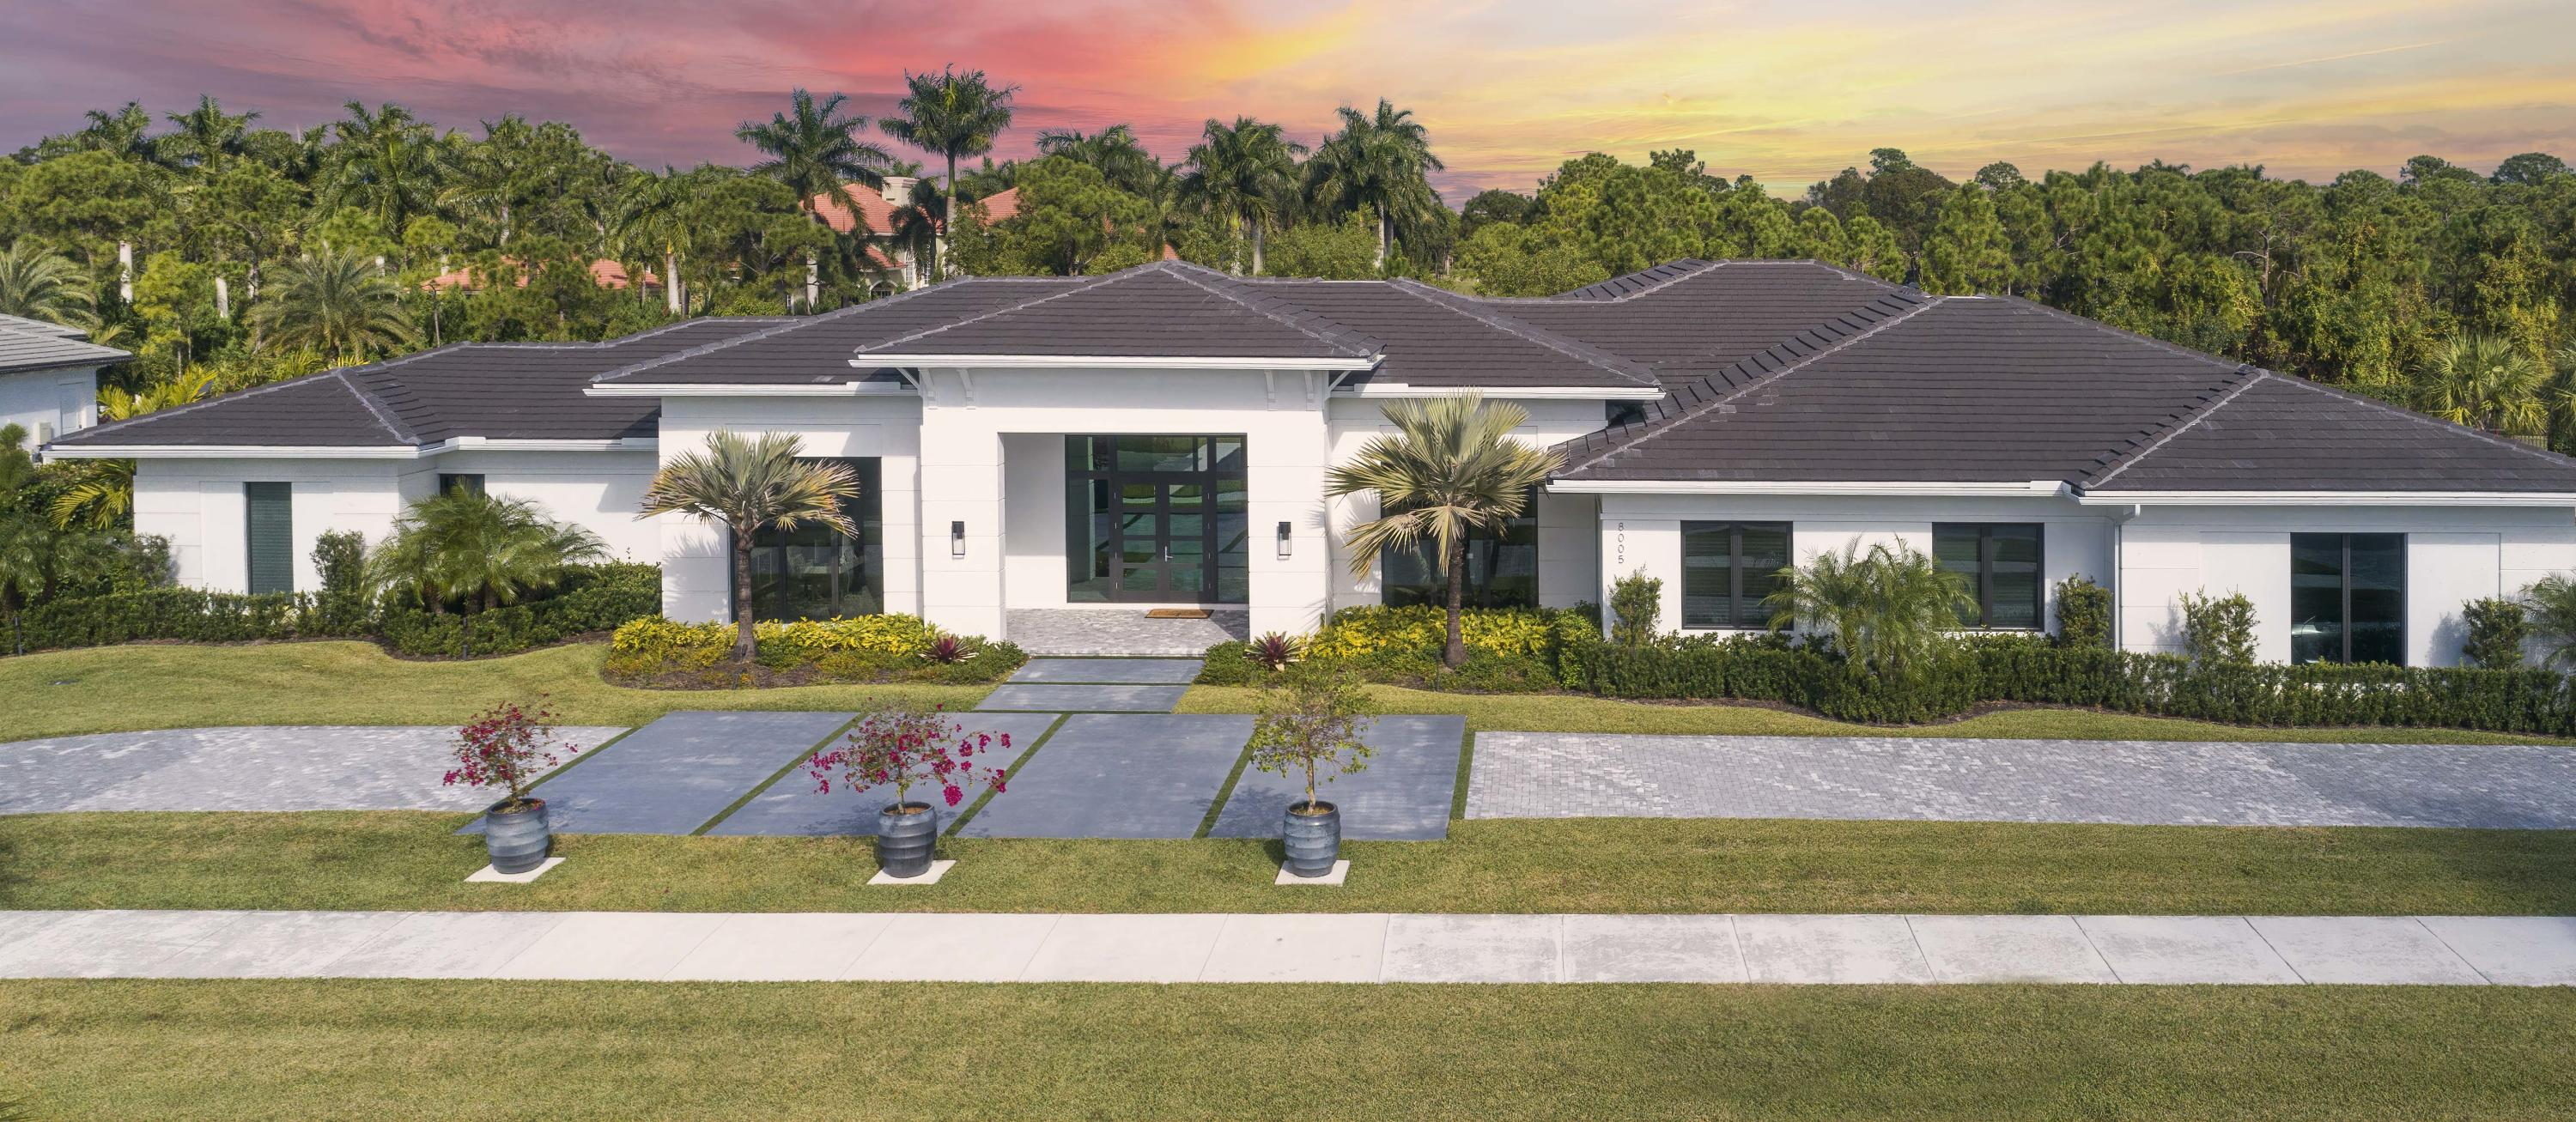 Photo of 8005 SE Hidden Bridge Court, Jupiter, FL 33458